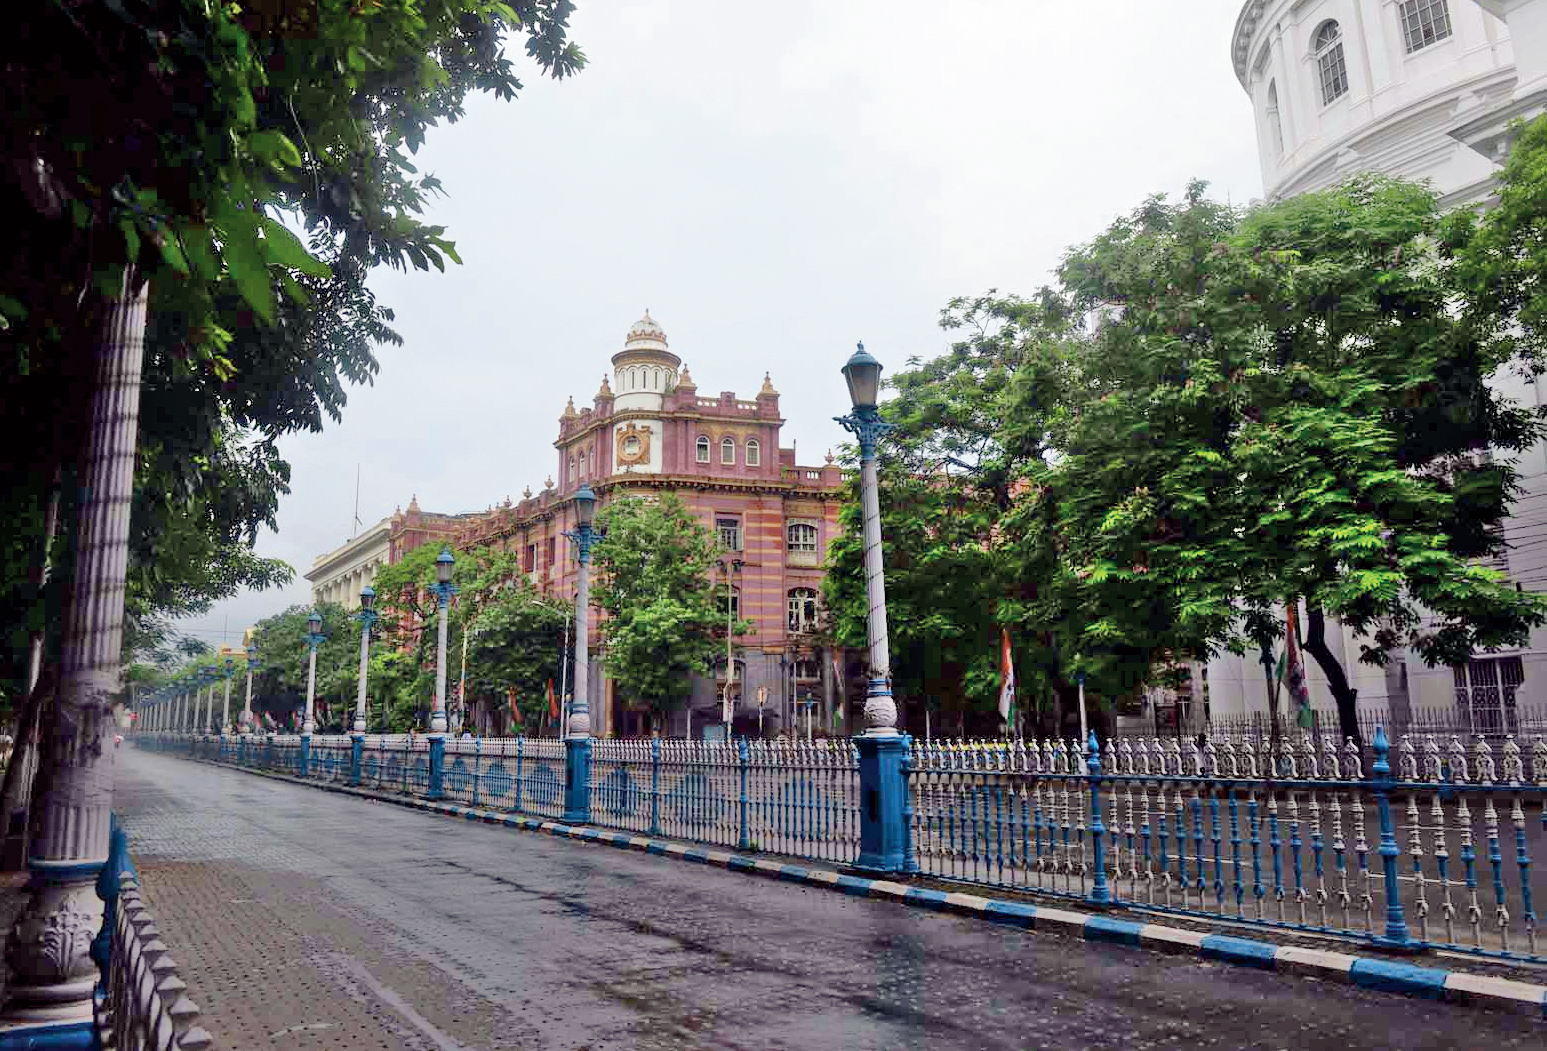 The road taken by the carts — past GPO and Royal Insurance Building before turning left towards the Rodda godown. The seventh cart had Haridas Datta, one of the rebels, as its coachman.